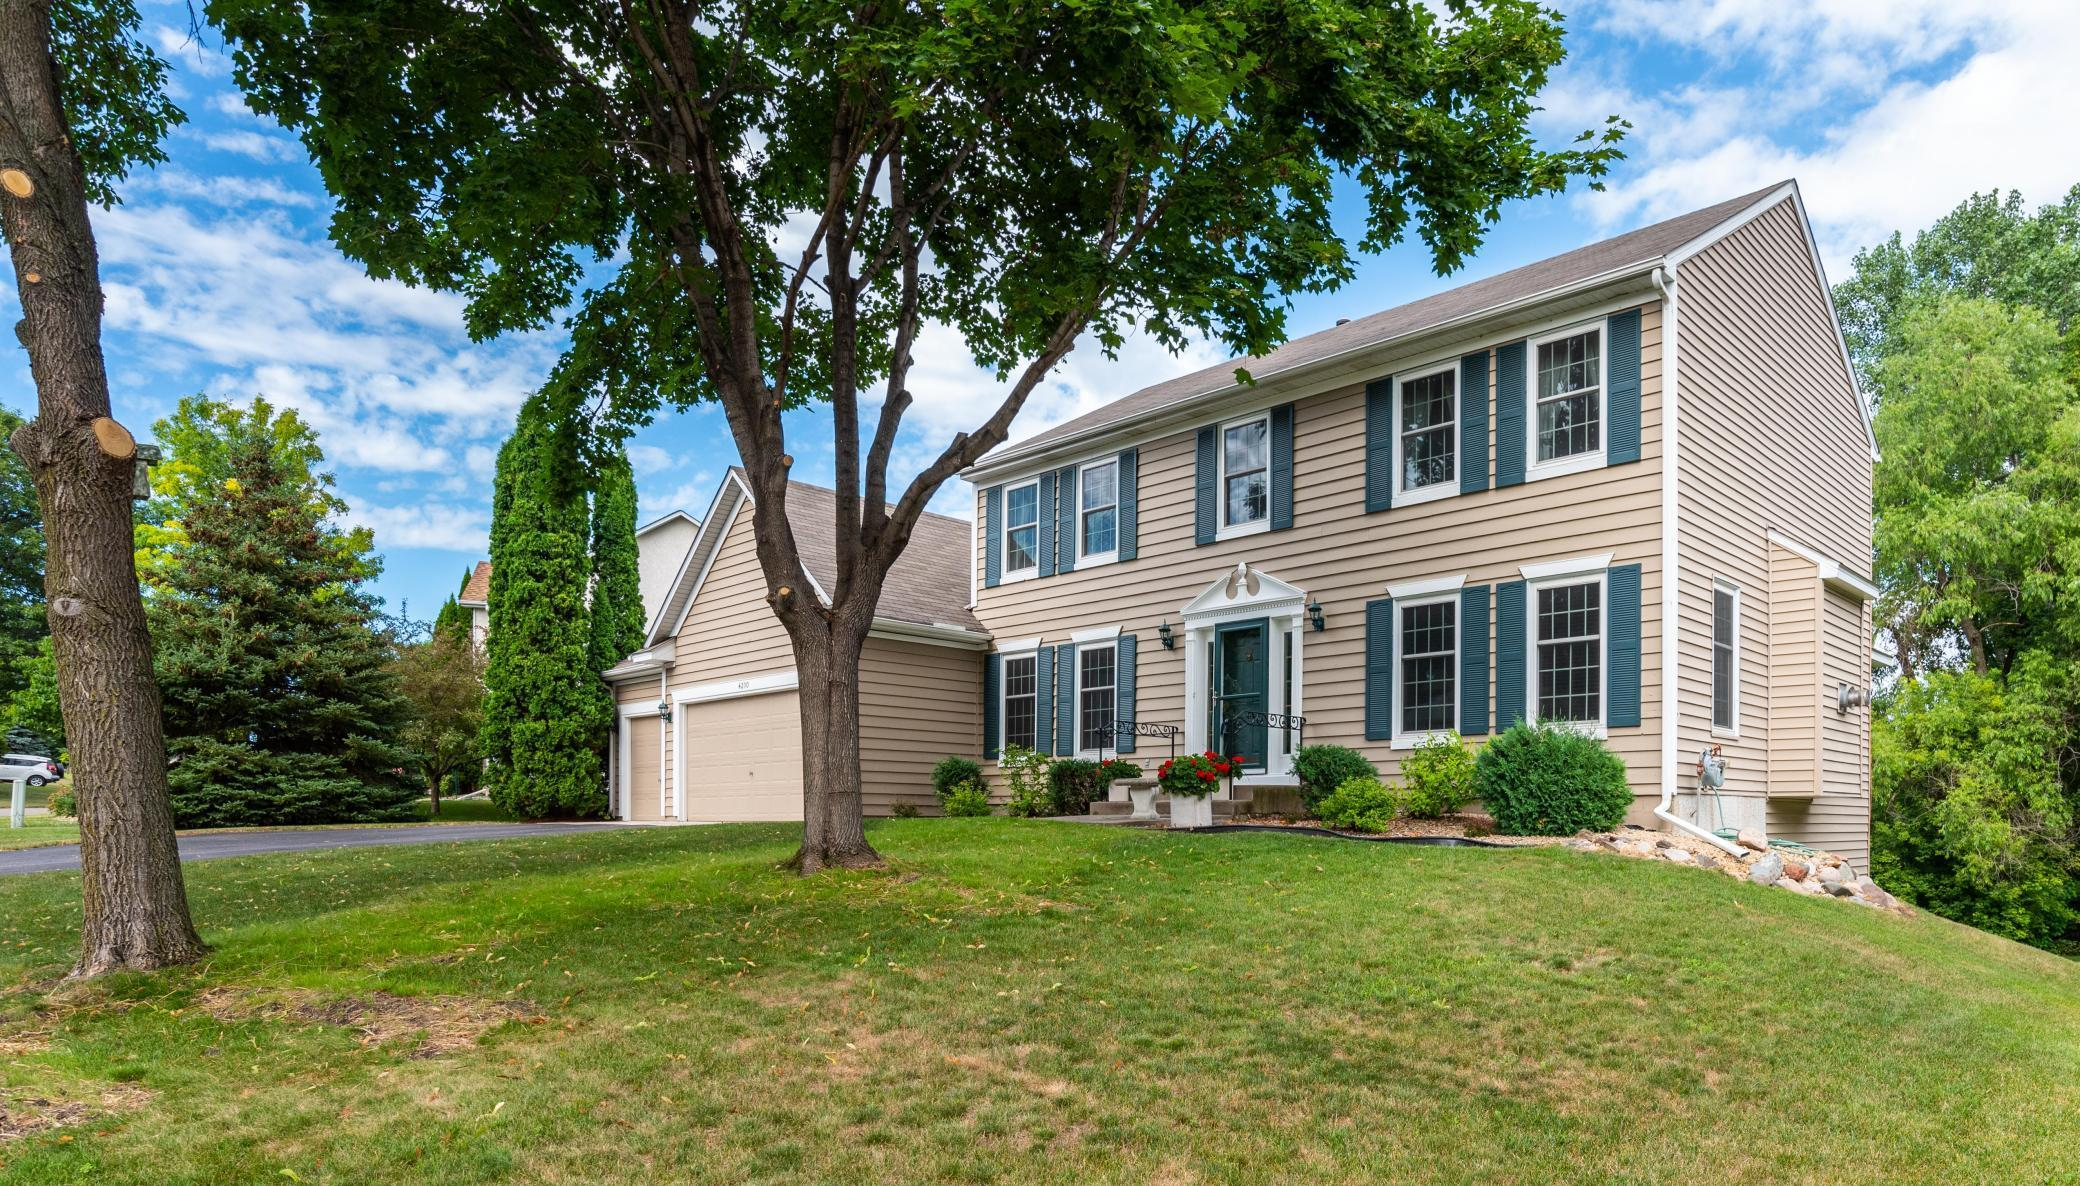 4210 Evergreen Lane N Property Photo - Plymouth, MN real estate listing